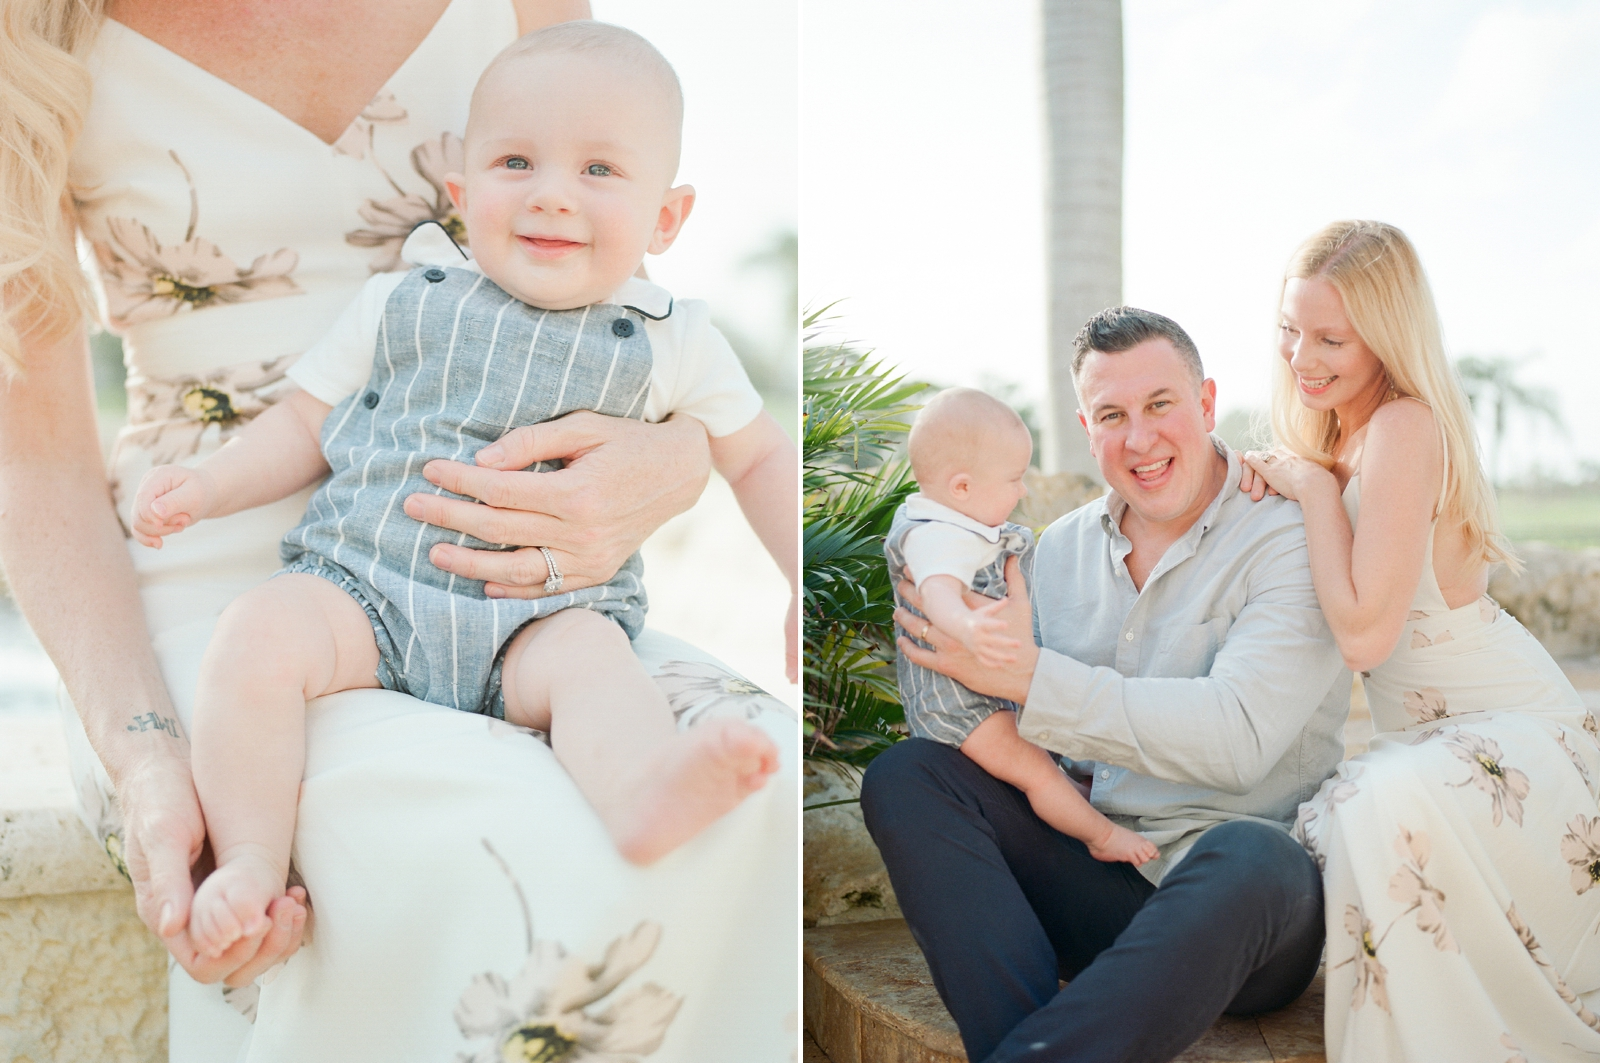 admirals_cove_jupiter_family_photographer_jupiter_beach_shannon_griffin_0013.jpg